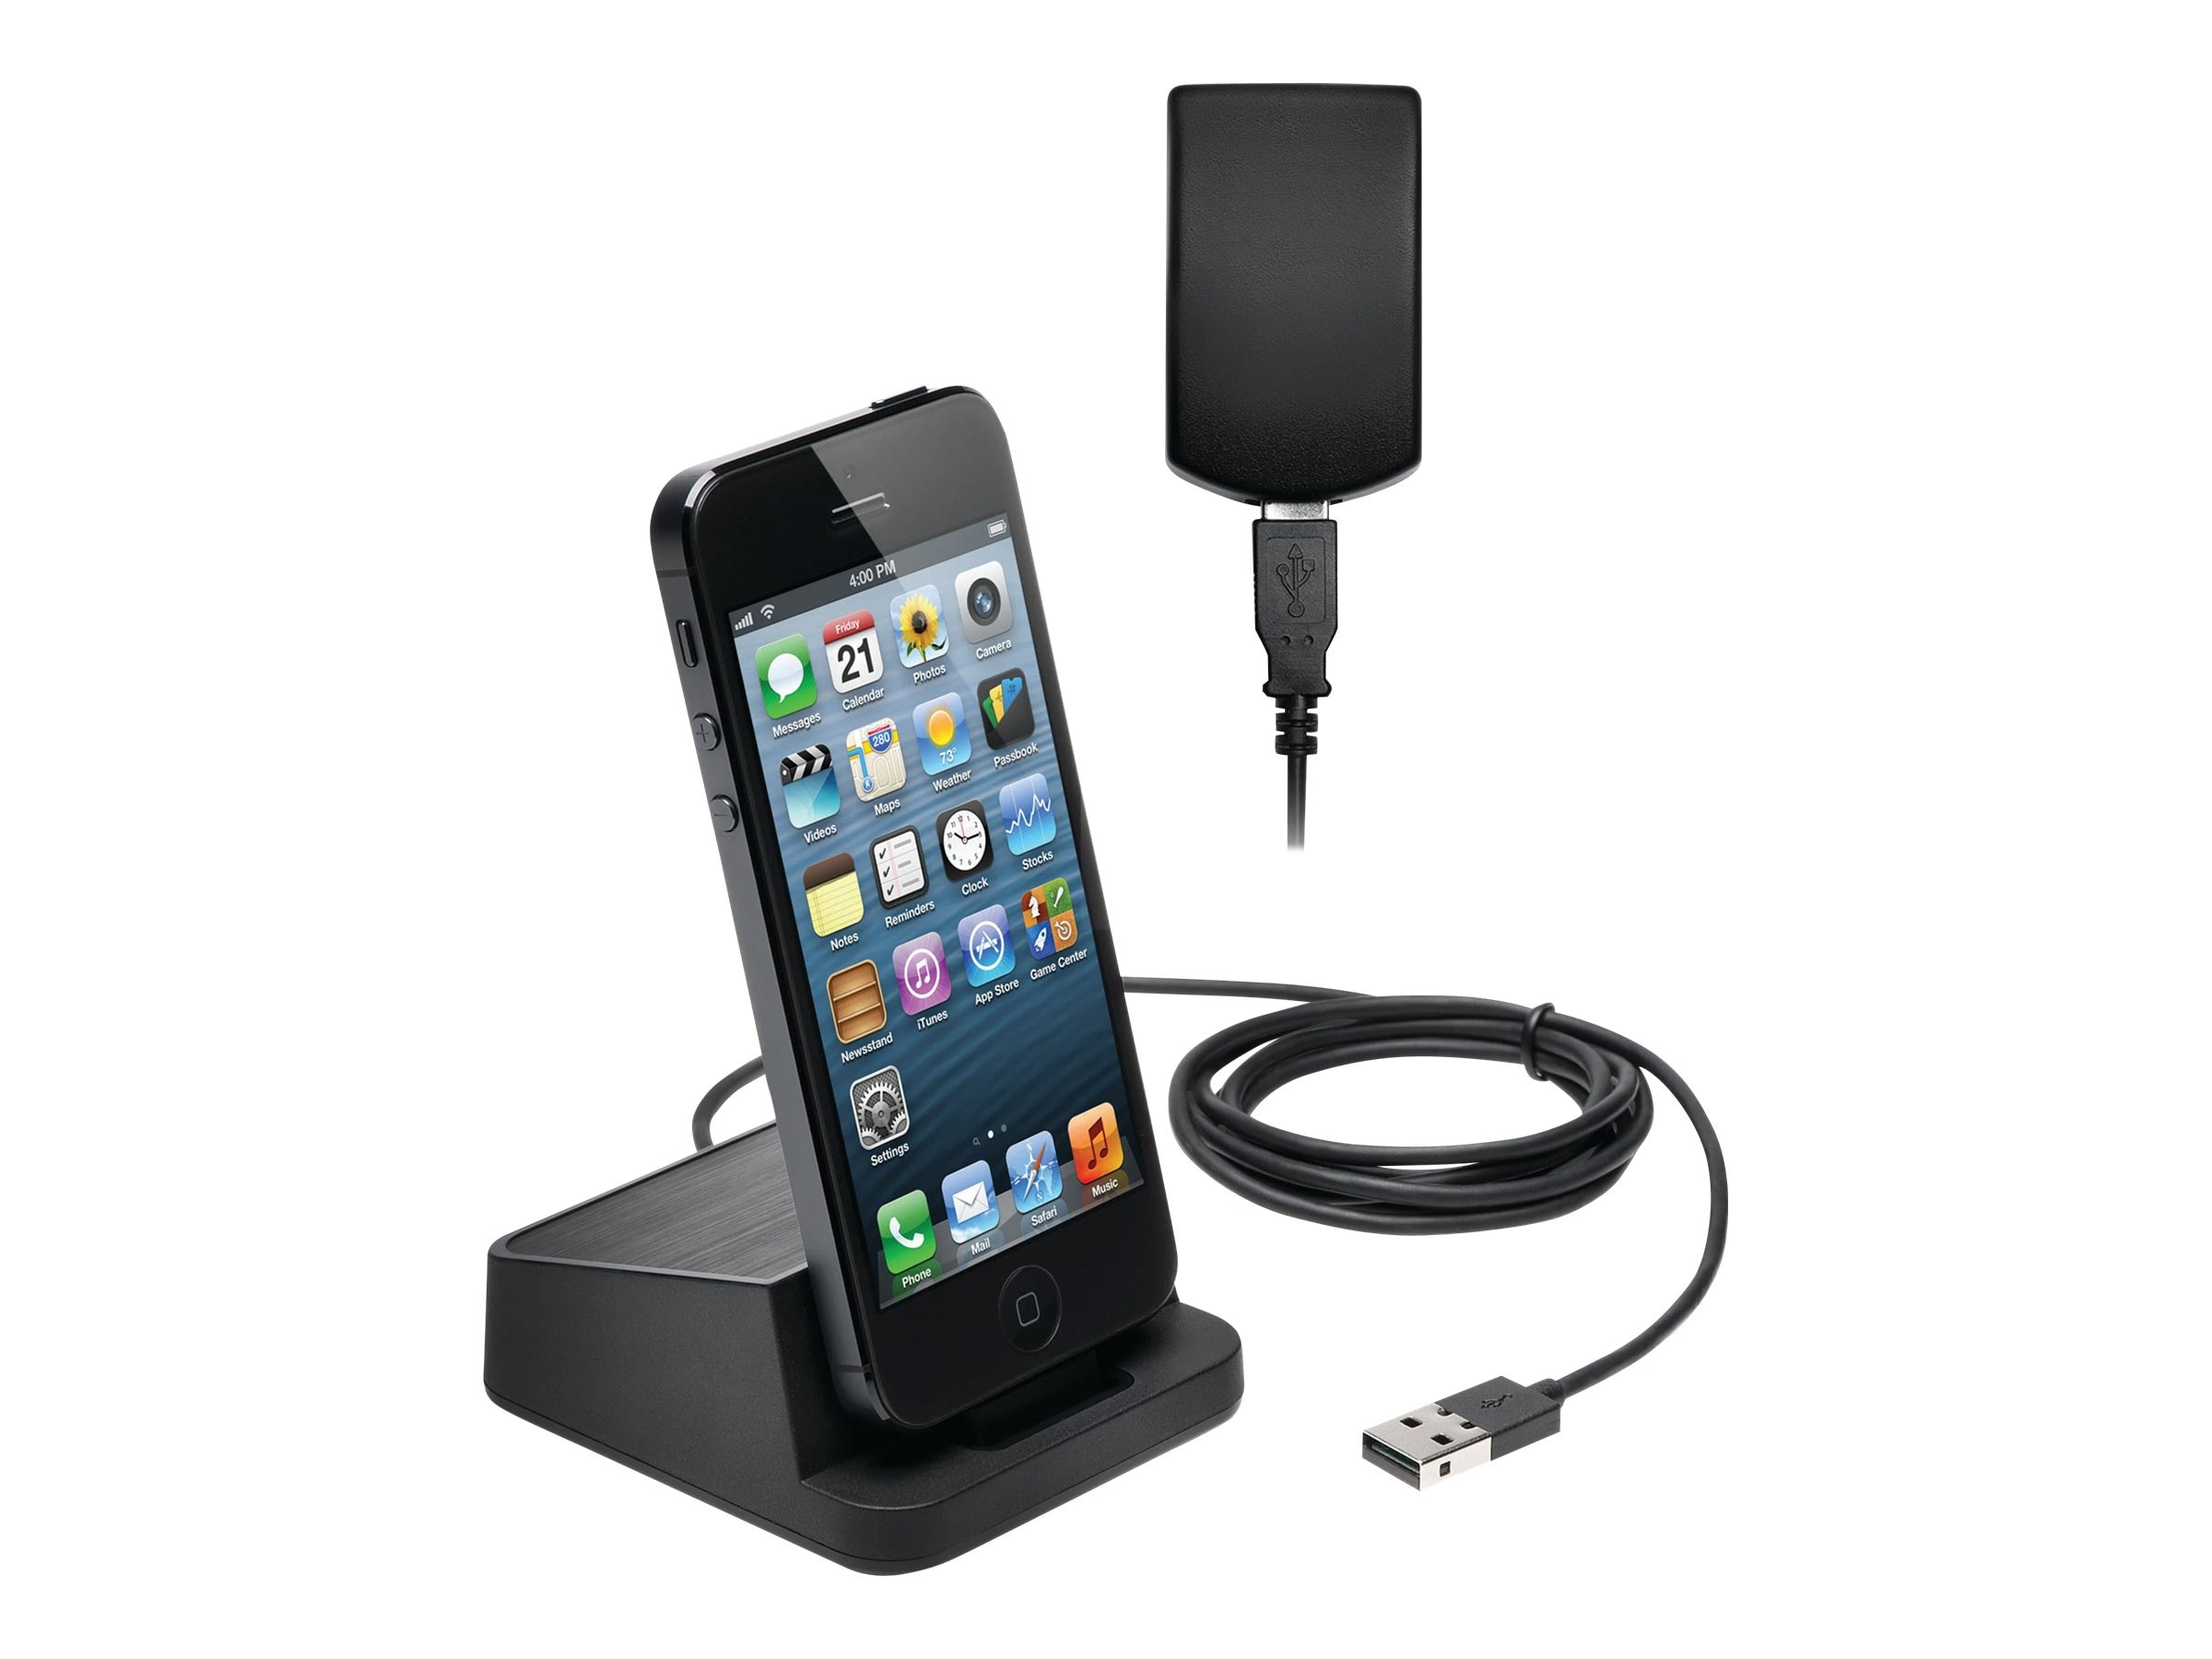 Kensington AbsolutePower Charge and Sync Stand